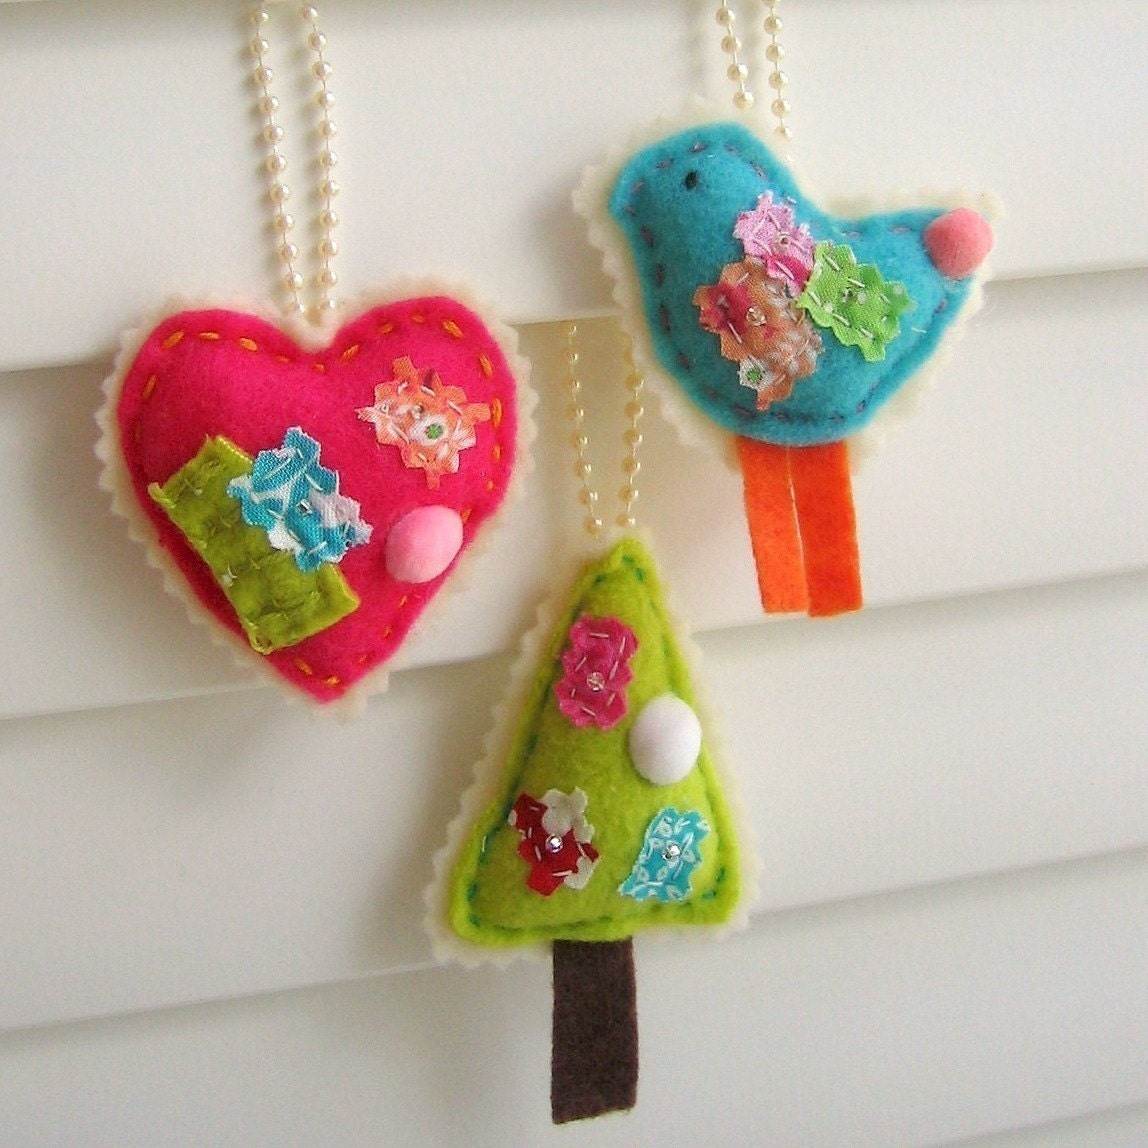 Hand Sewn Felt and Fabric Scrap Ornaments, Decorations - Birdie, Heart, Tree, Set of 3